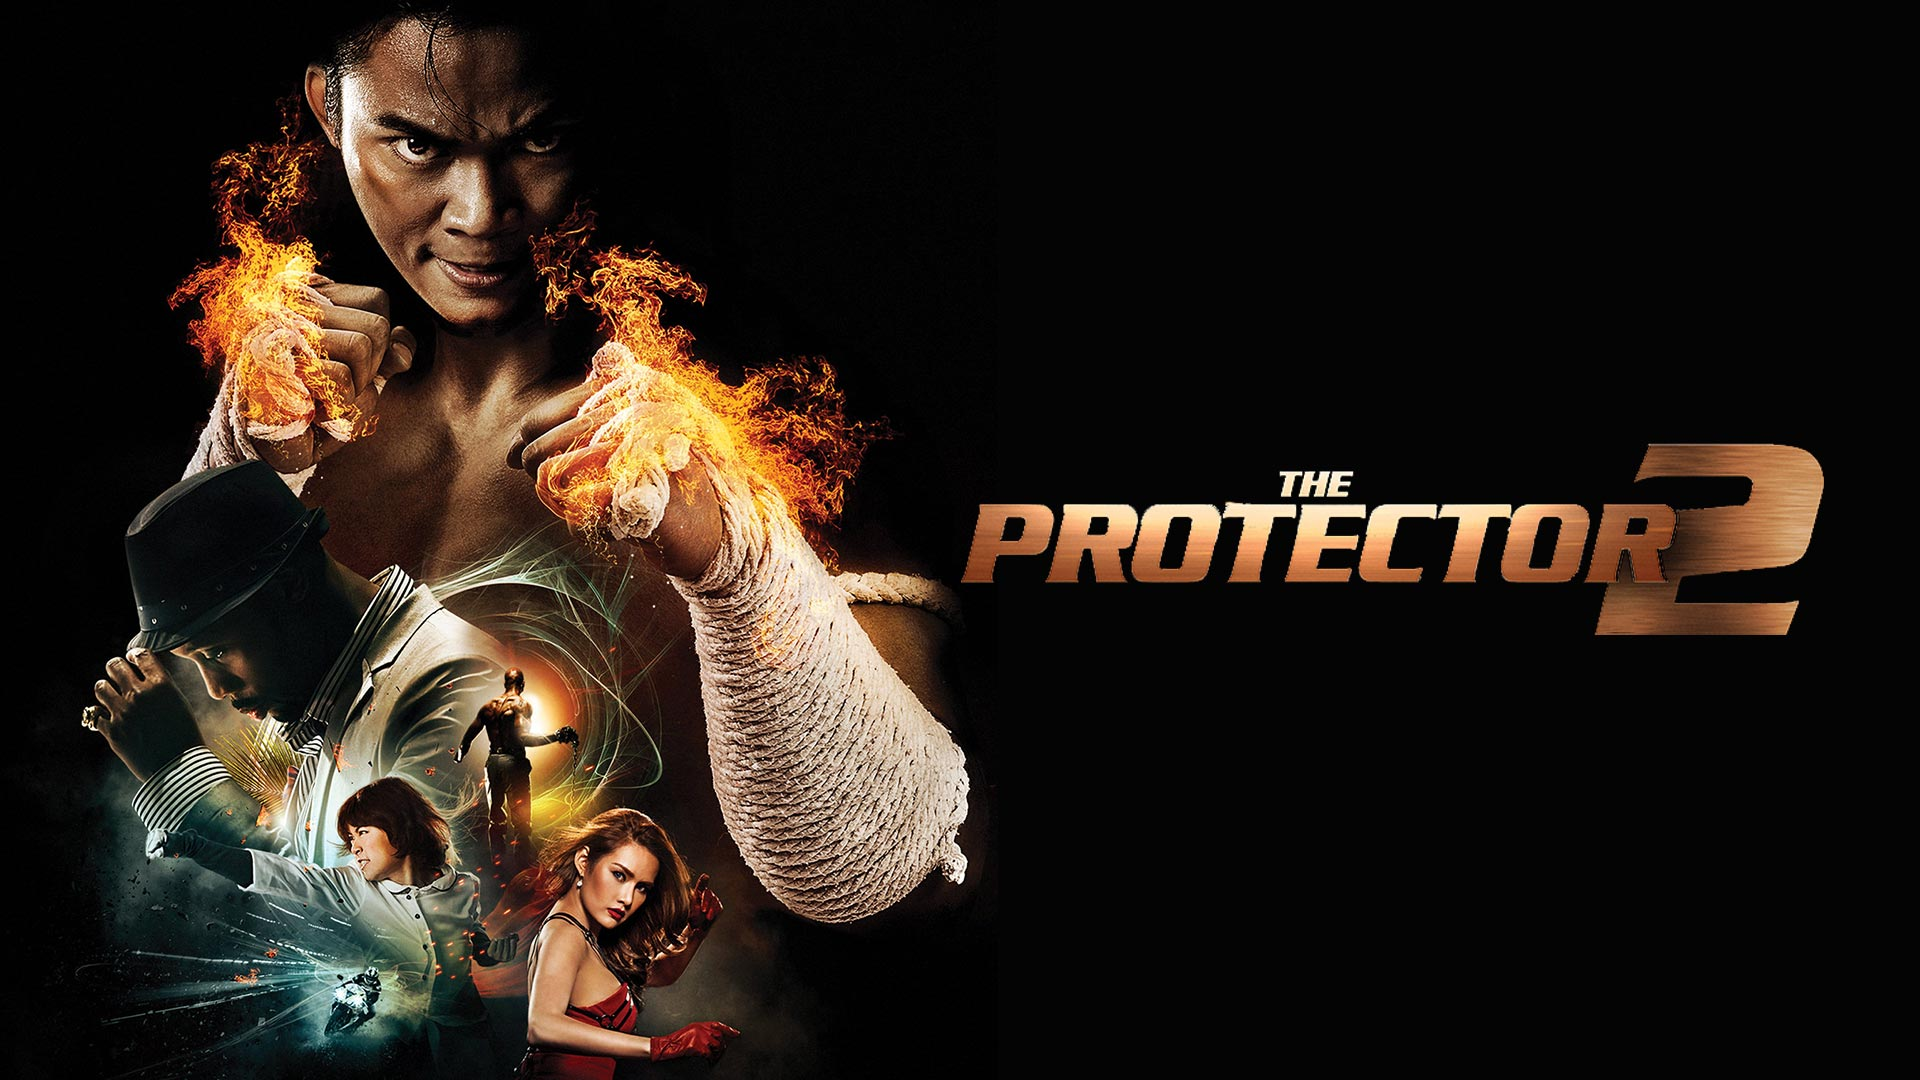 The Protector 2 (English Subtitled)